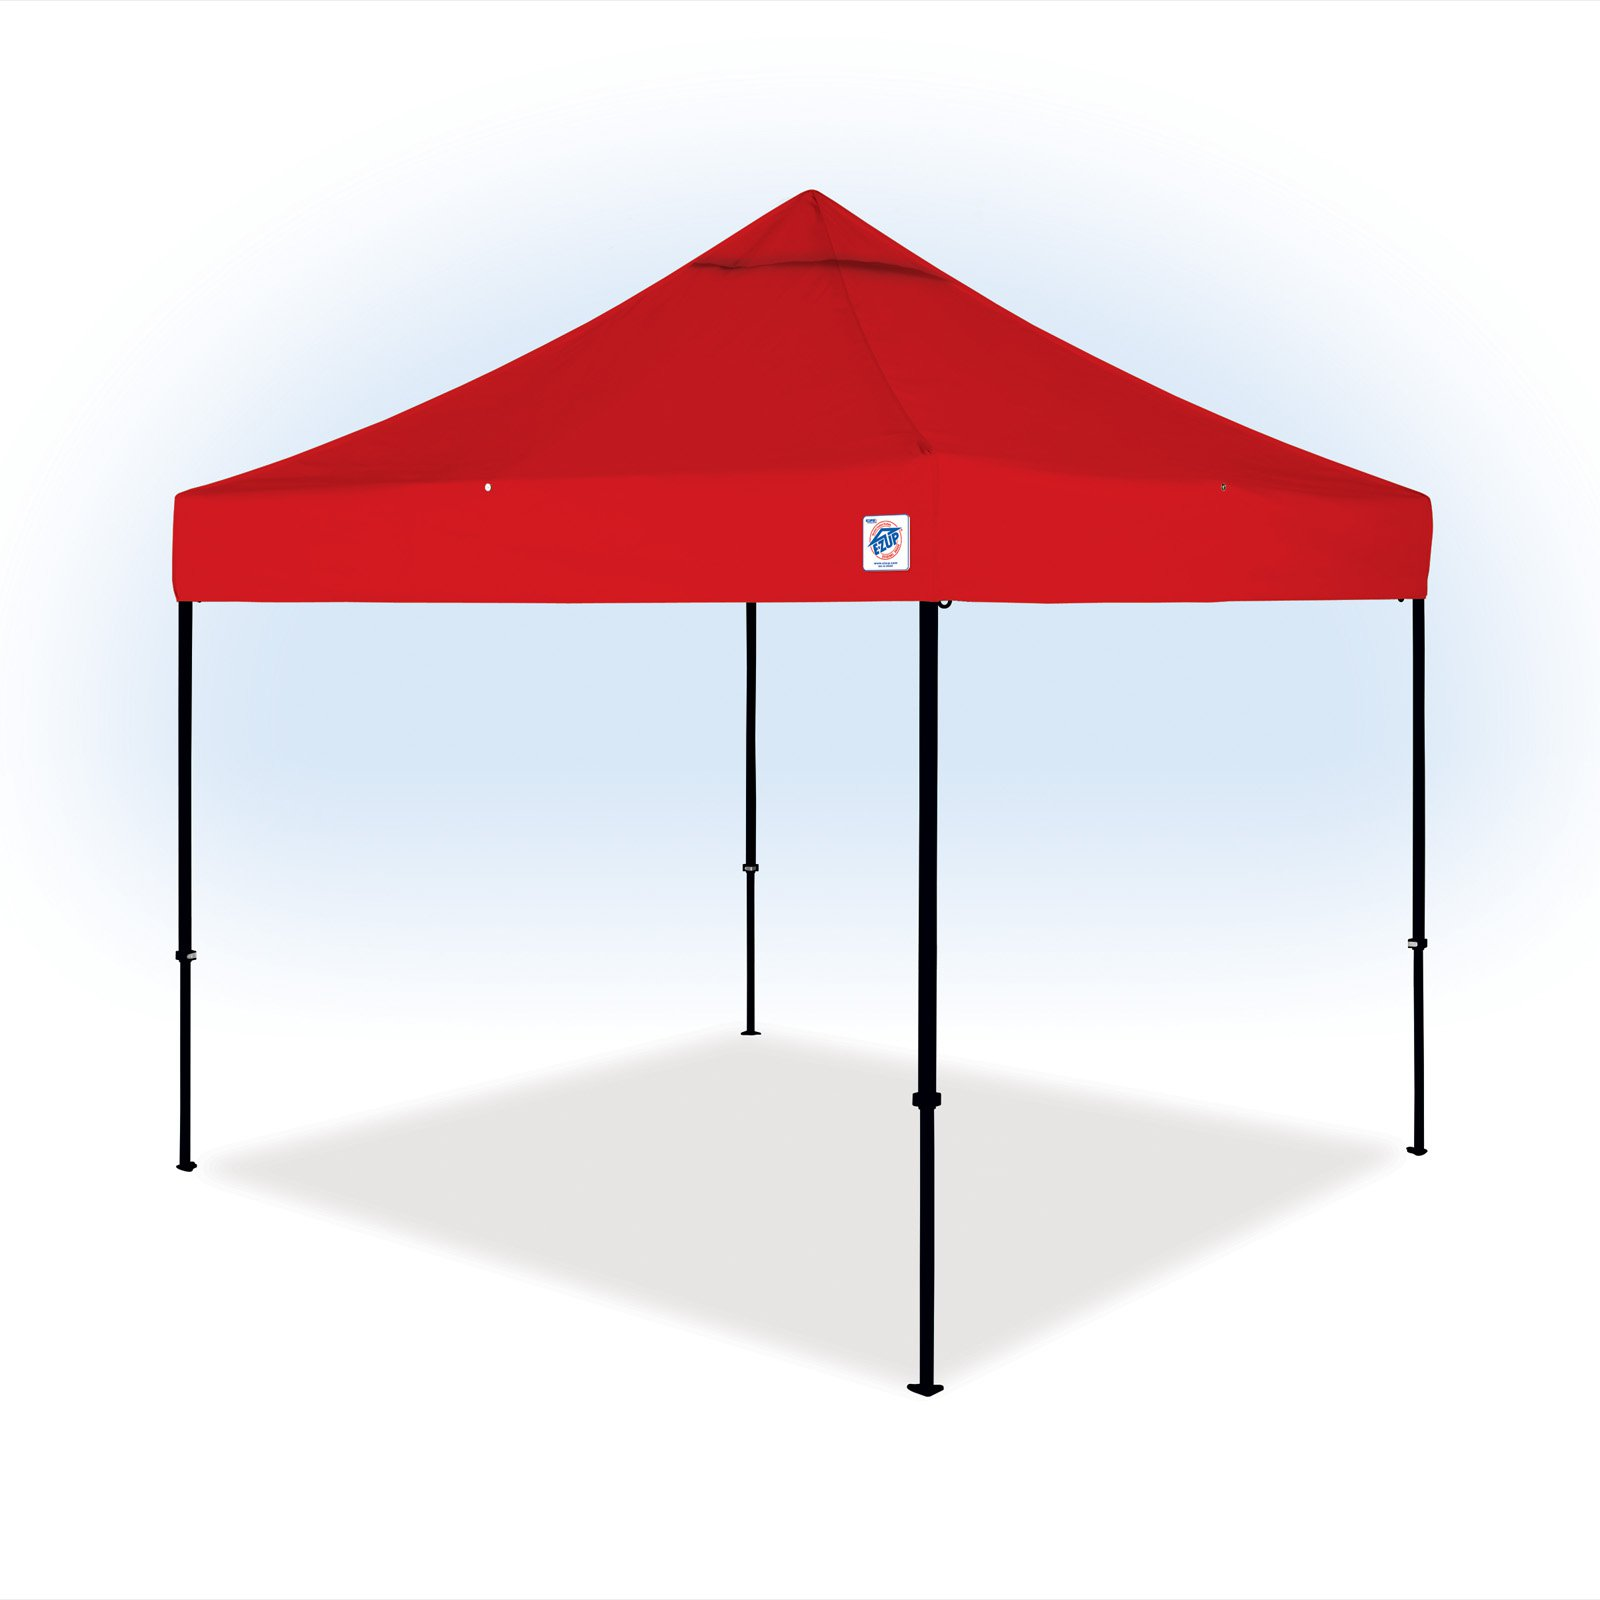 E-Z UP® Eclipse II 10x10 ft. Pop Up Canopy with Wind Vent Top